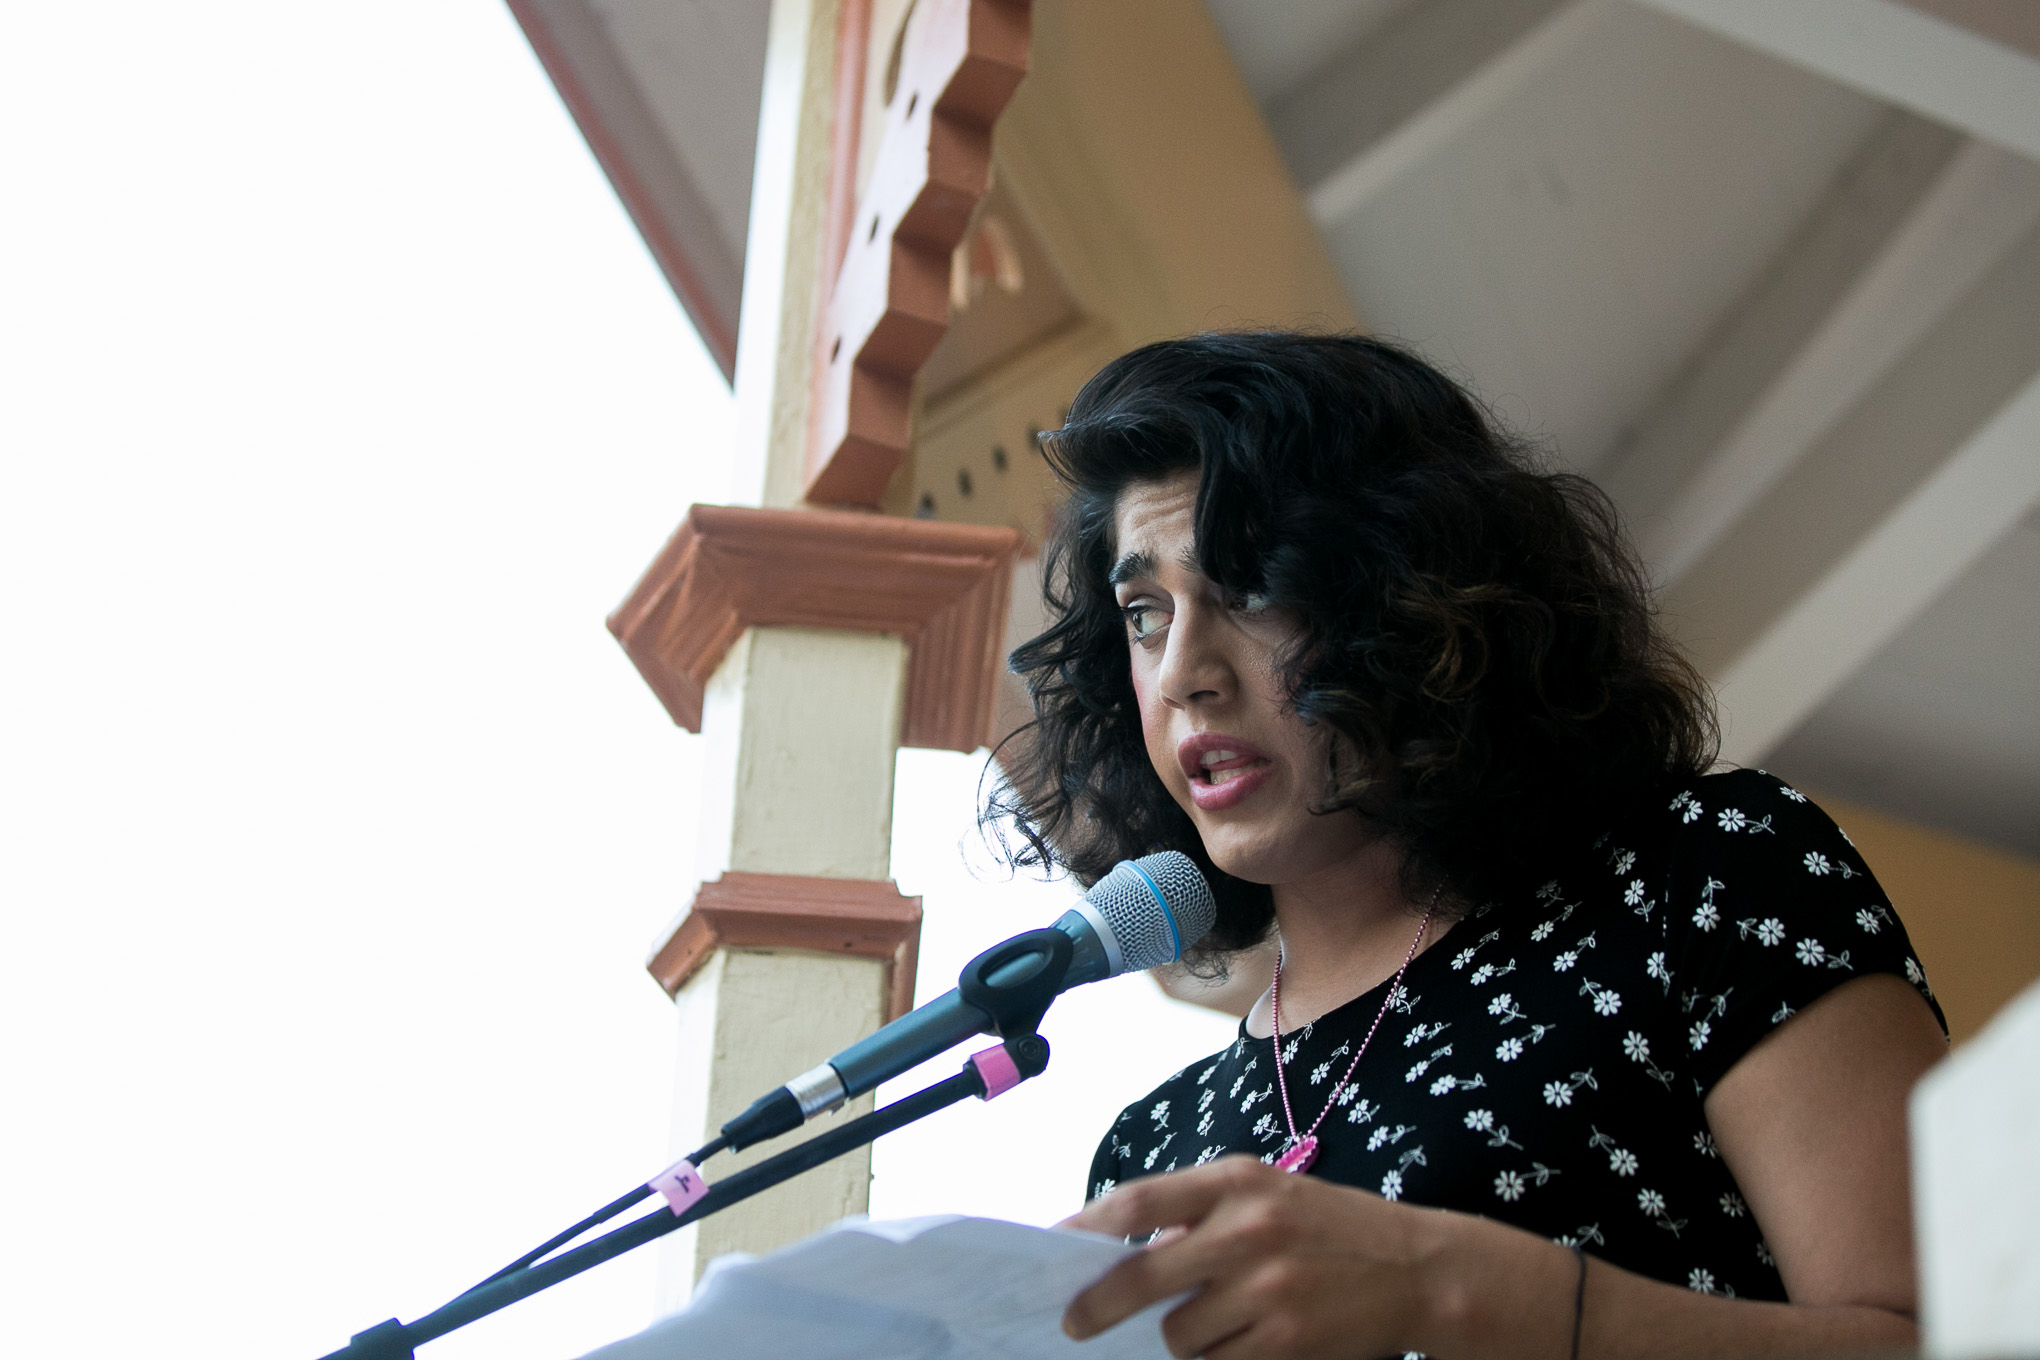 Poet/Author Polly Anna Rocha reads a piece reflecting of the Orlando shooting. Photo by Kathryn Boyd-Batstone.